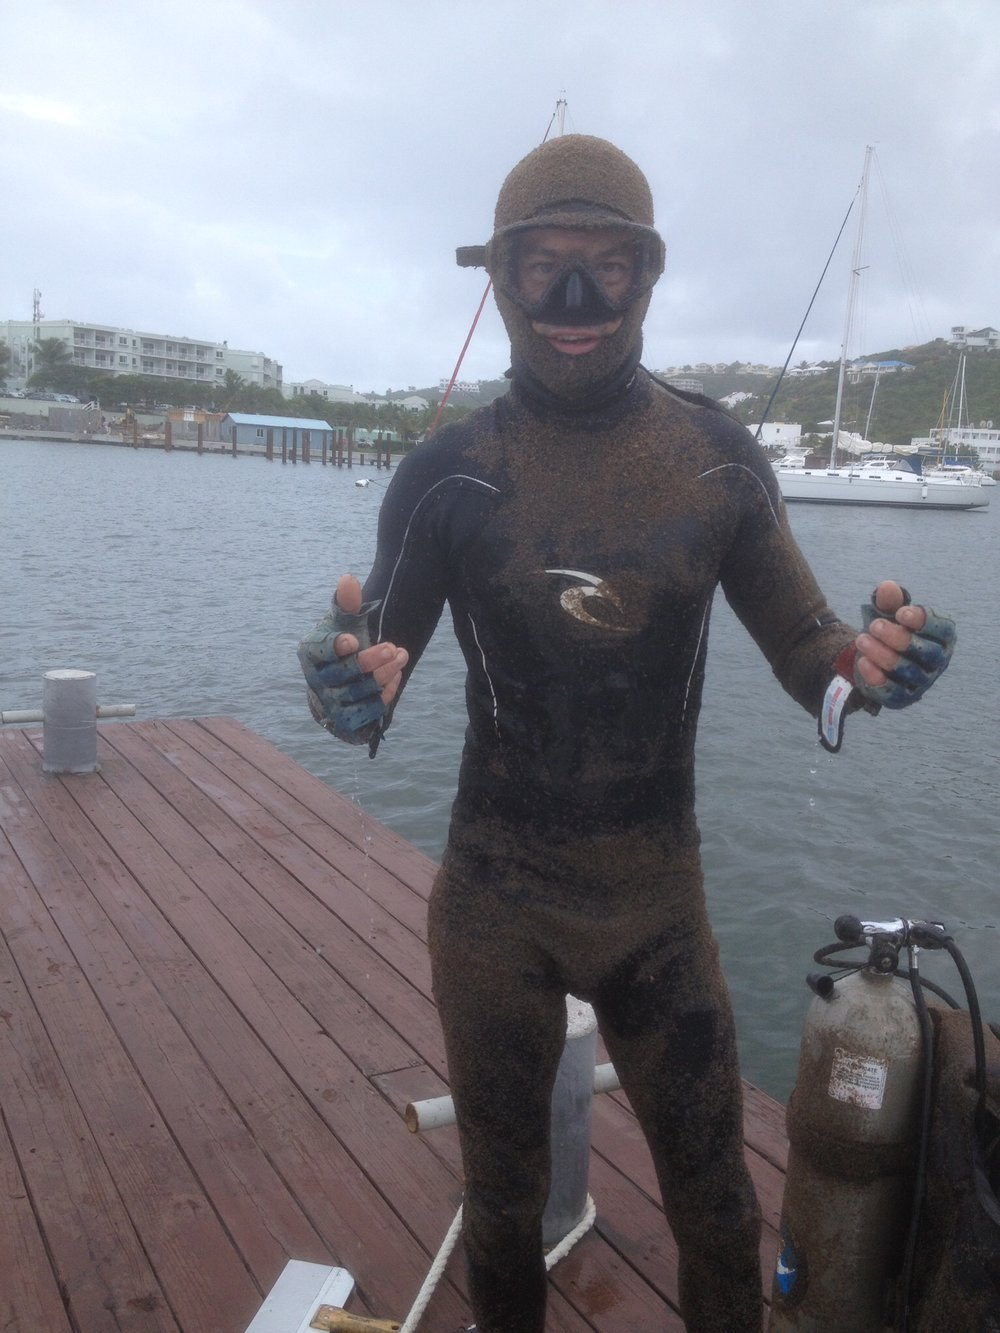 Baby shrimp cover Pascal's wetsuit after he cleaned  Mystique's  two hulls in Sint Maarten.